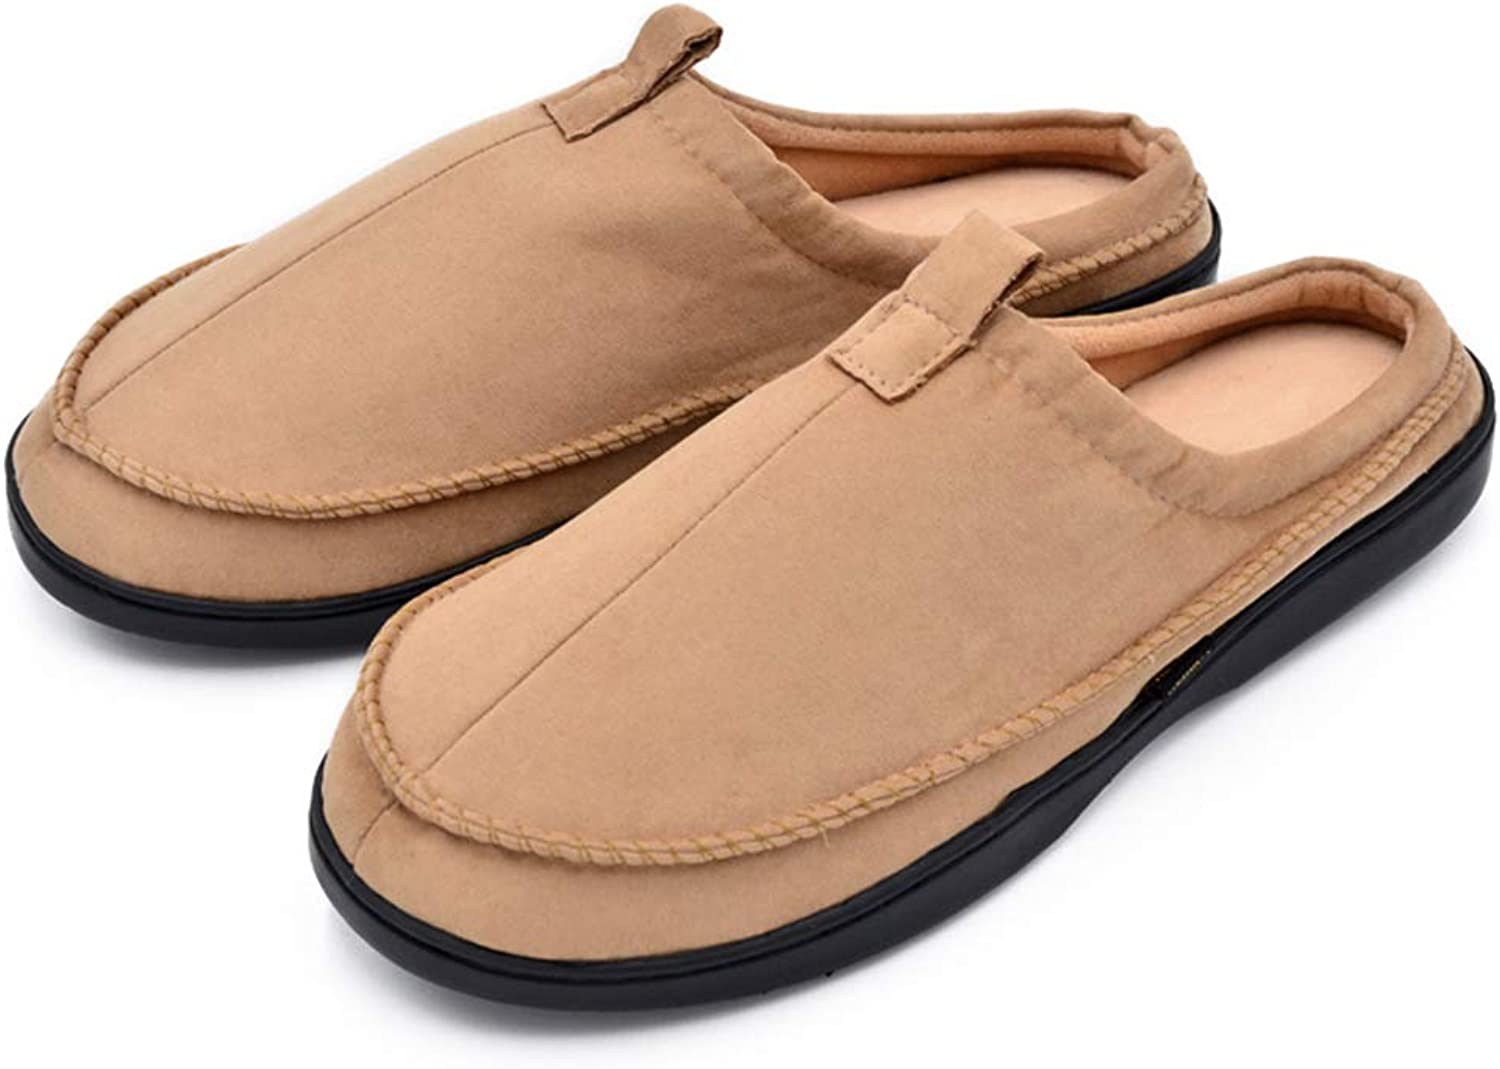 Newina Men's Suede Memory Foam Moccasin Slippers Ultra Soft Short Plush Lined Slip-on Indoor&Outdoor shoes,Anti-Slip Rubber Sole